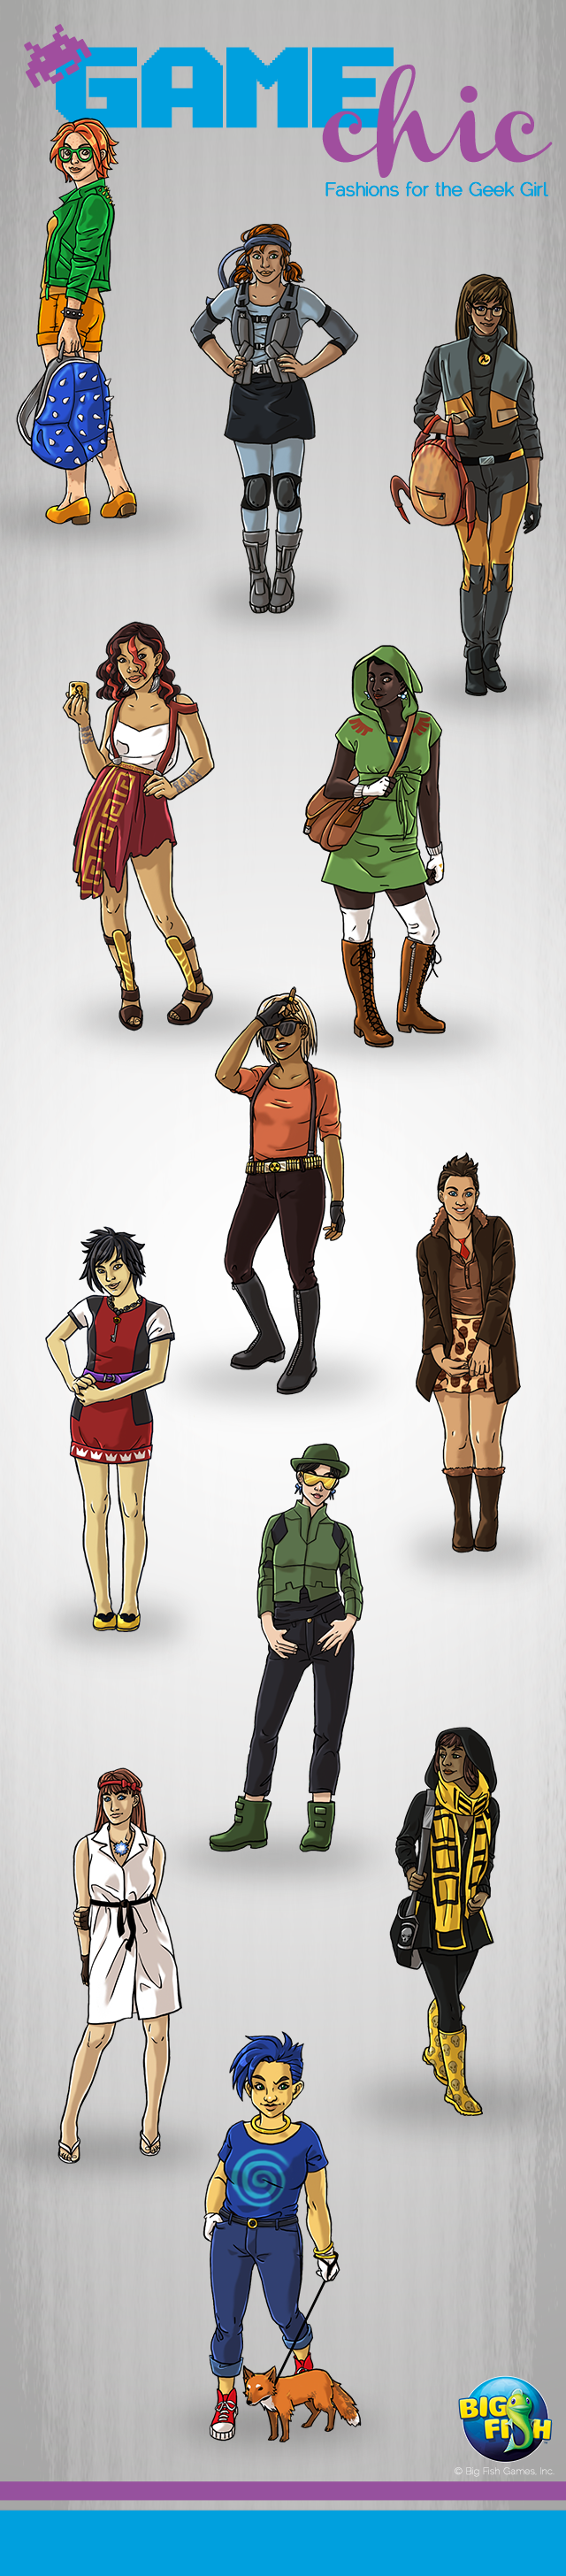 Big fish games 39 video game character designs geekgirlcon for Big fish characters